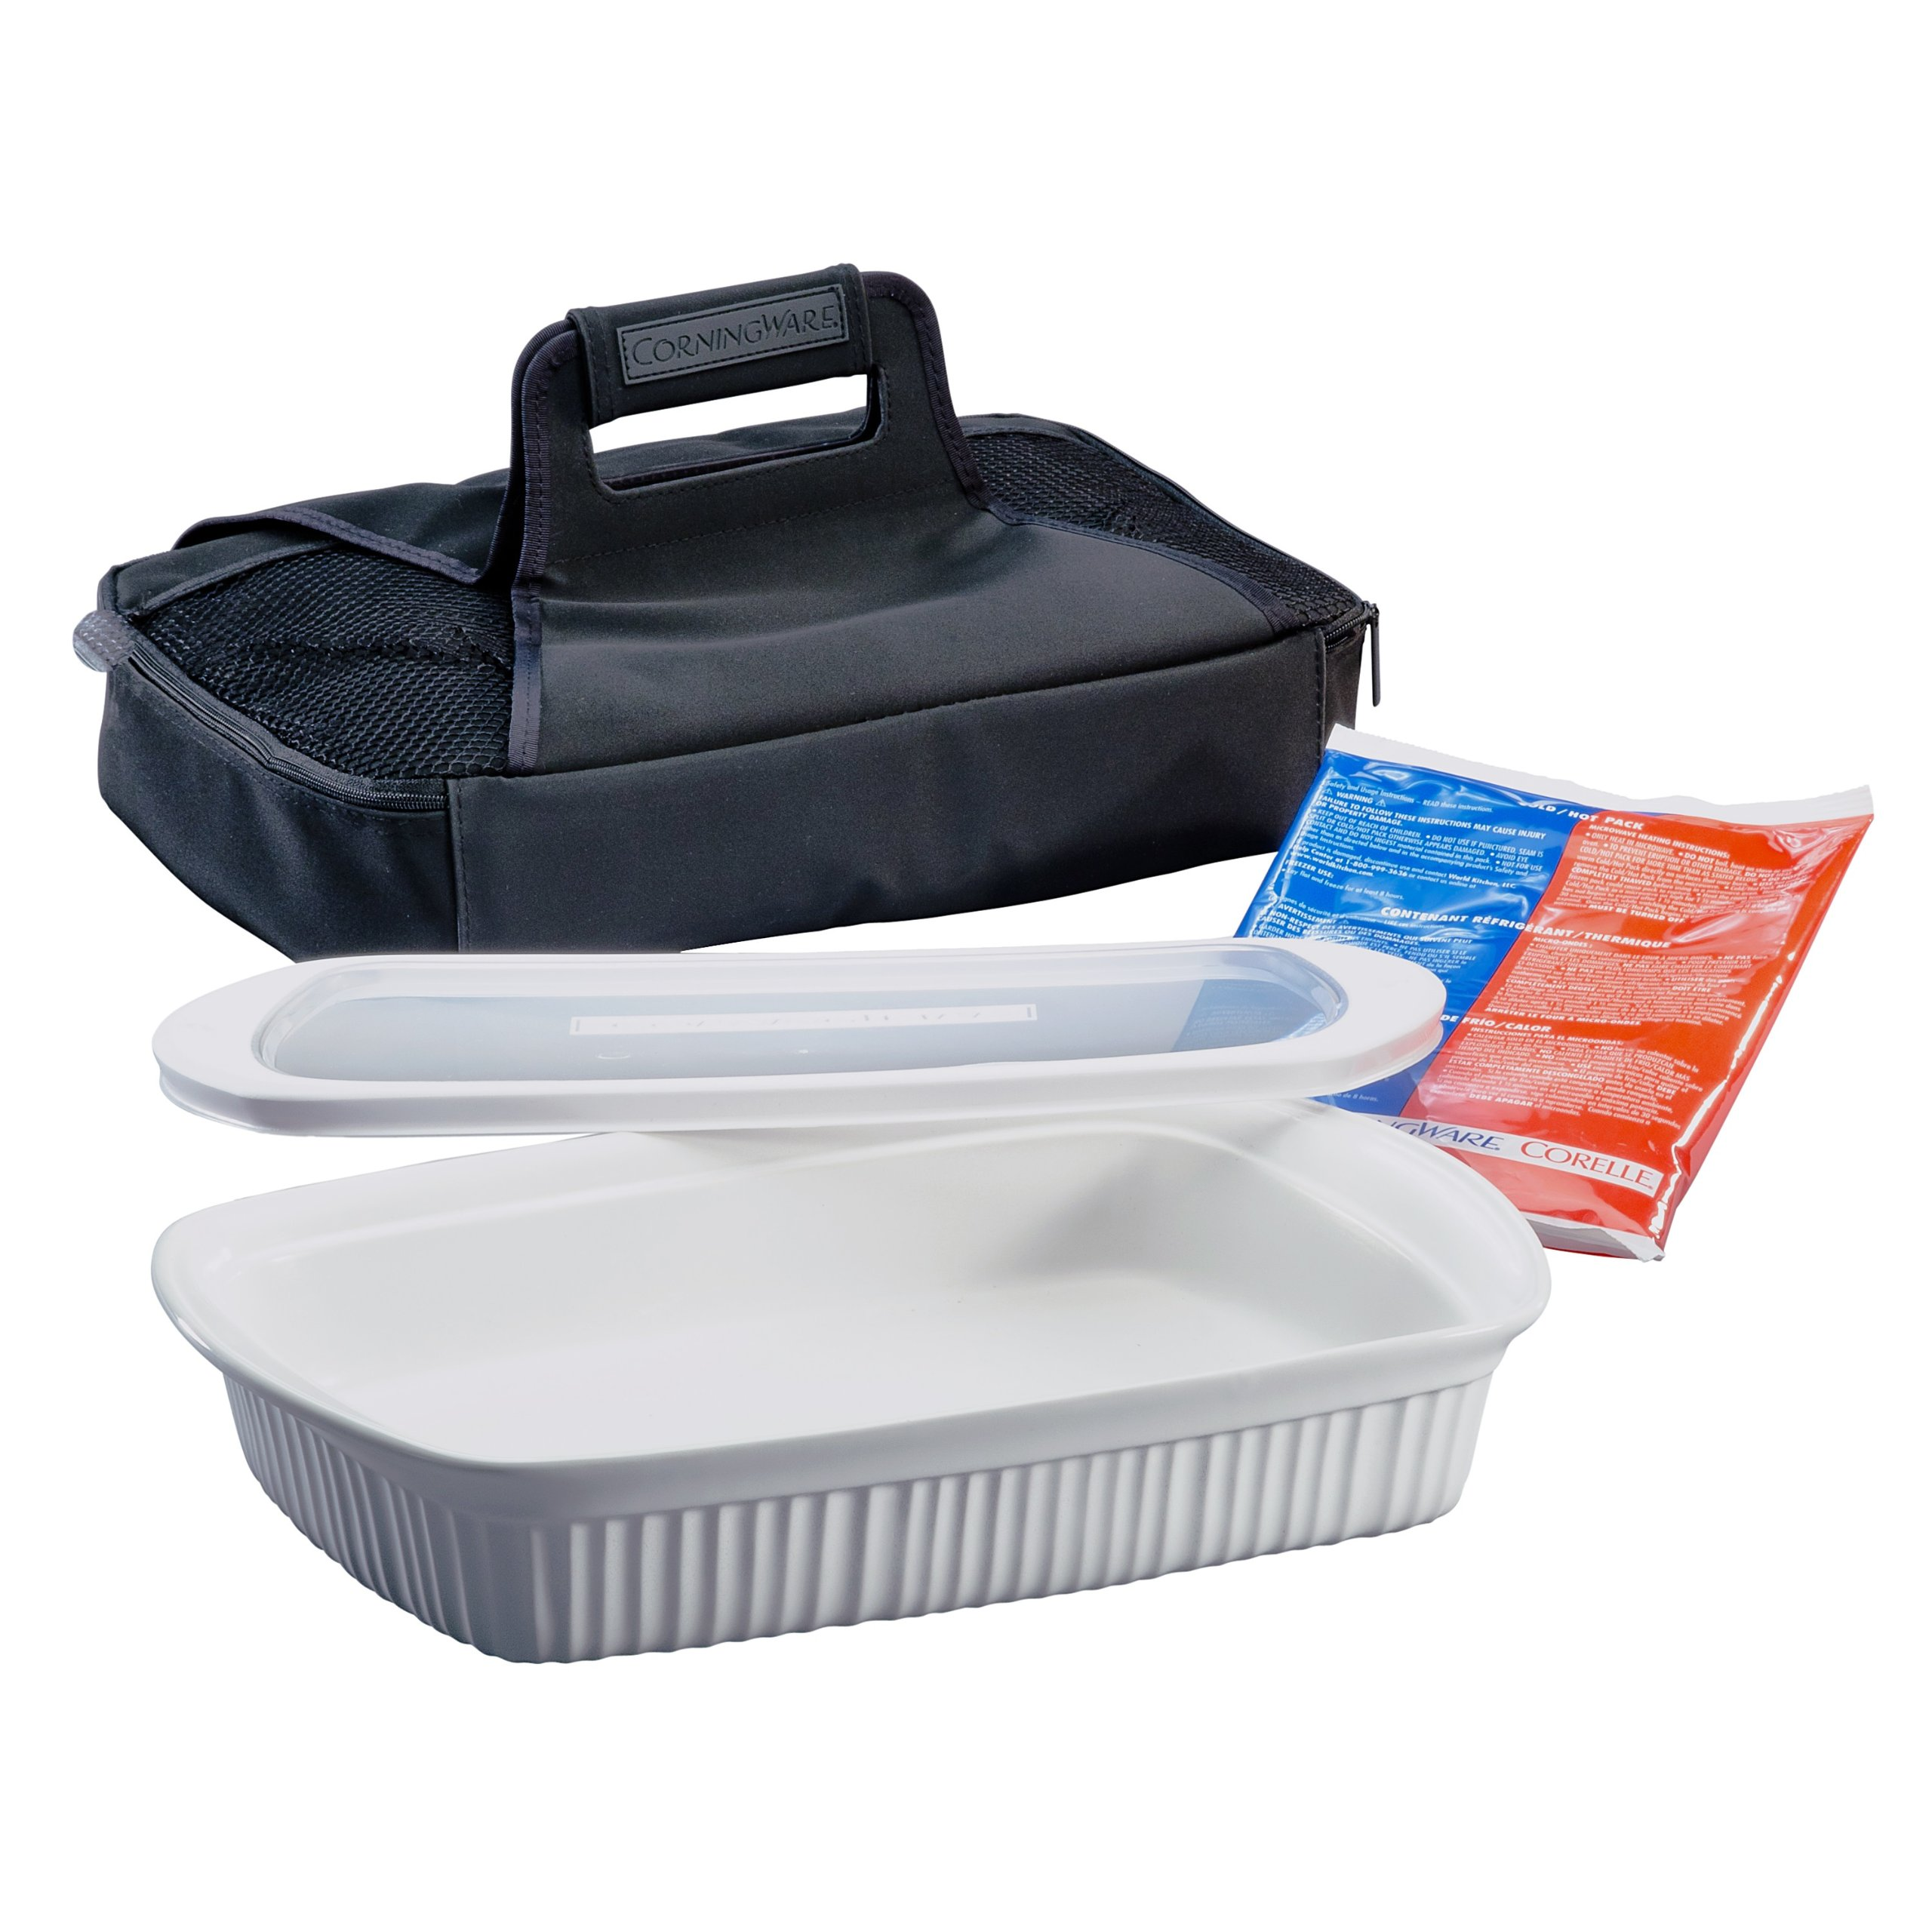 CorningWare French White Anyware 3-Quart Oblong Portable Dish, 4-Piece